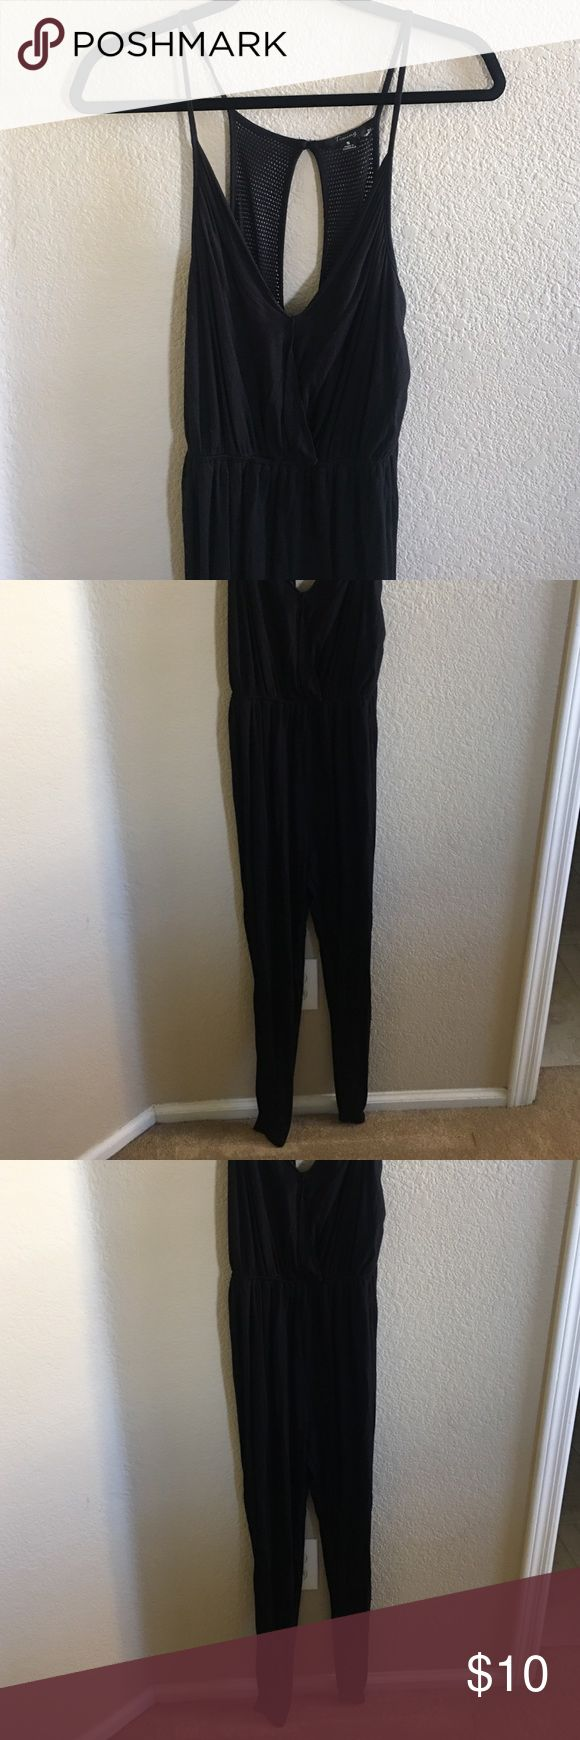 Body suit/romper Full body suit/romper tank!! Little lint rip at the top in the back that can be seen in the picture! Other